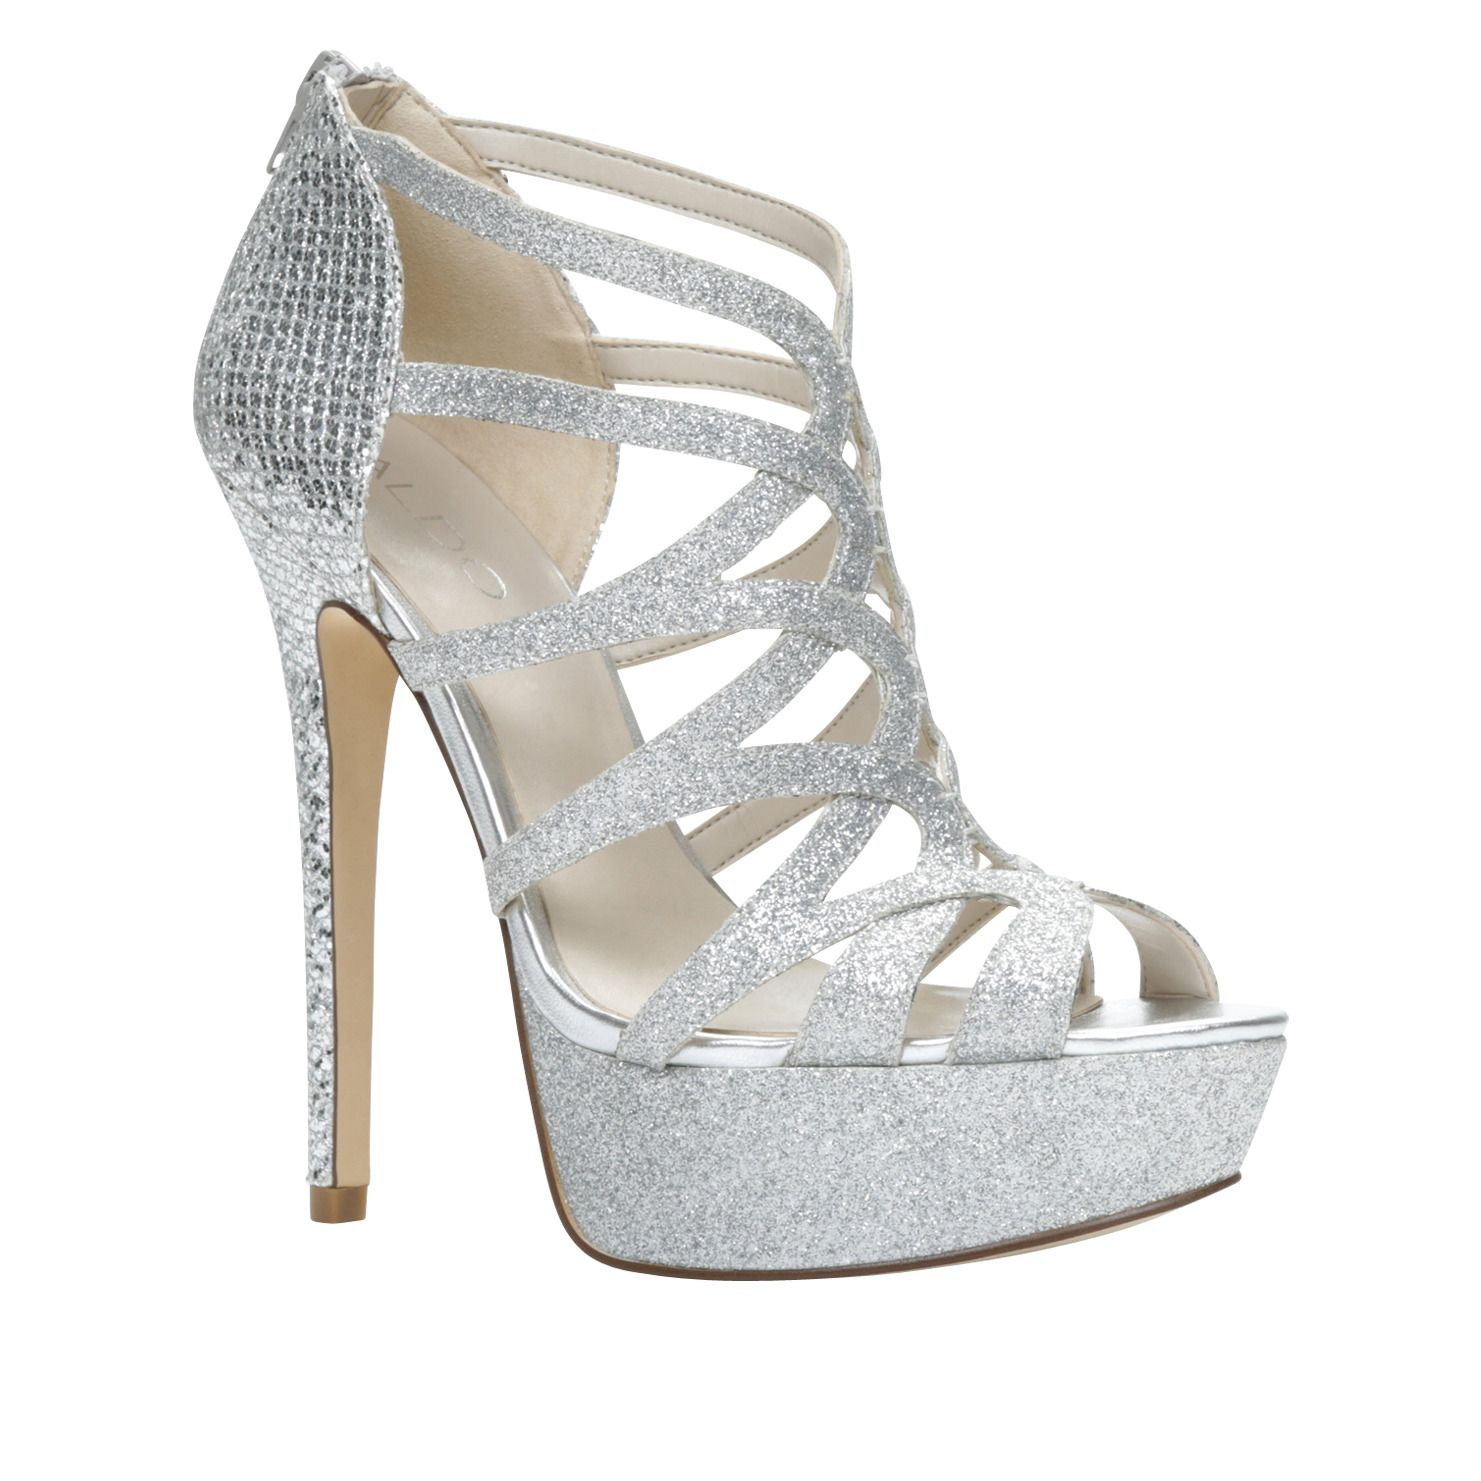 59c14e65414 LOVAEDE - women s high heels sandals for sale at ALDO Shoes.